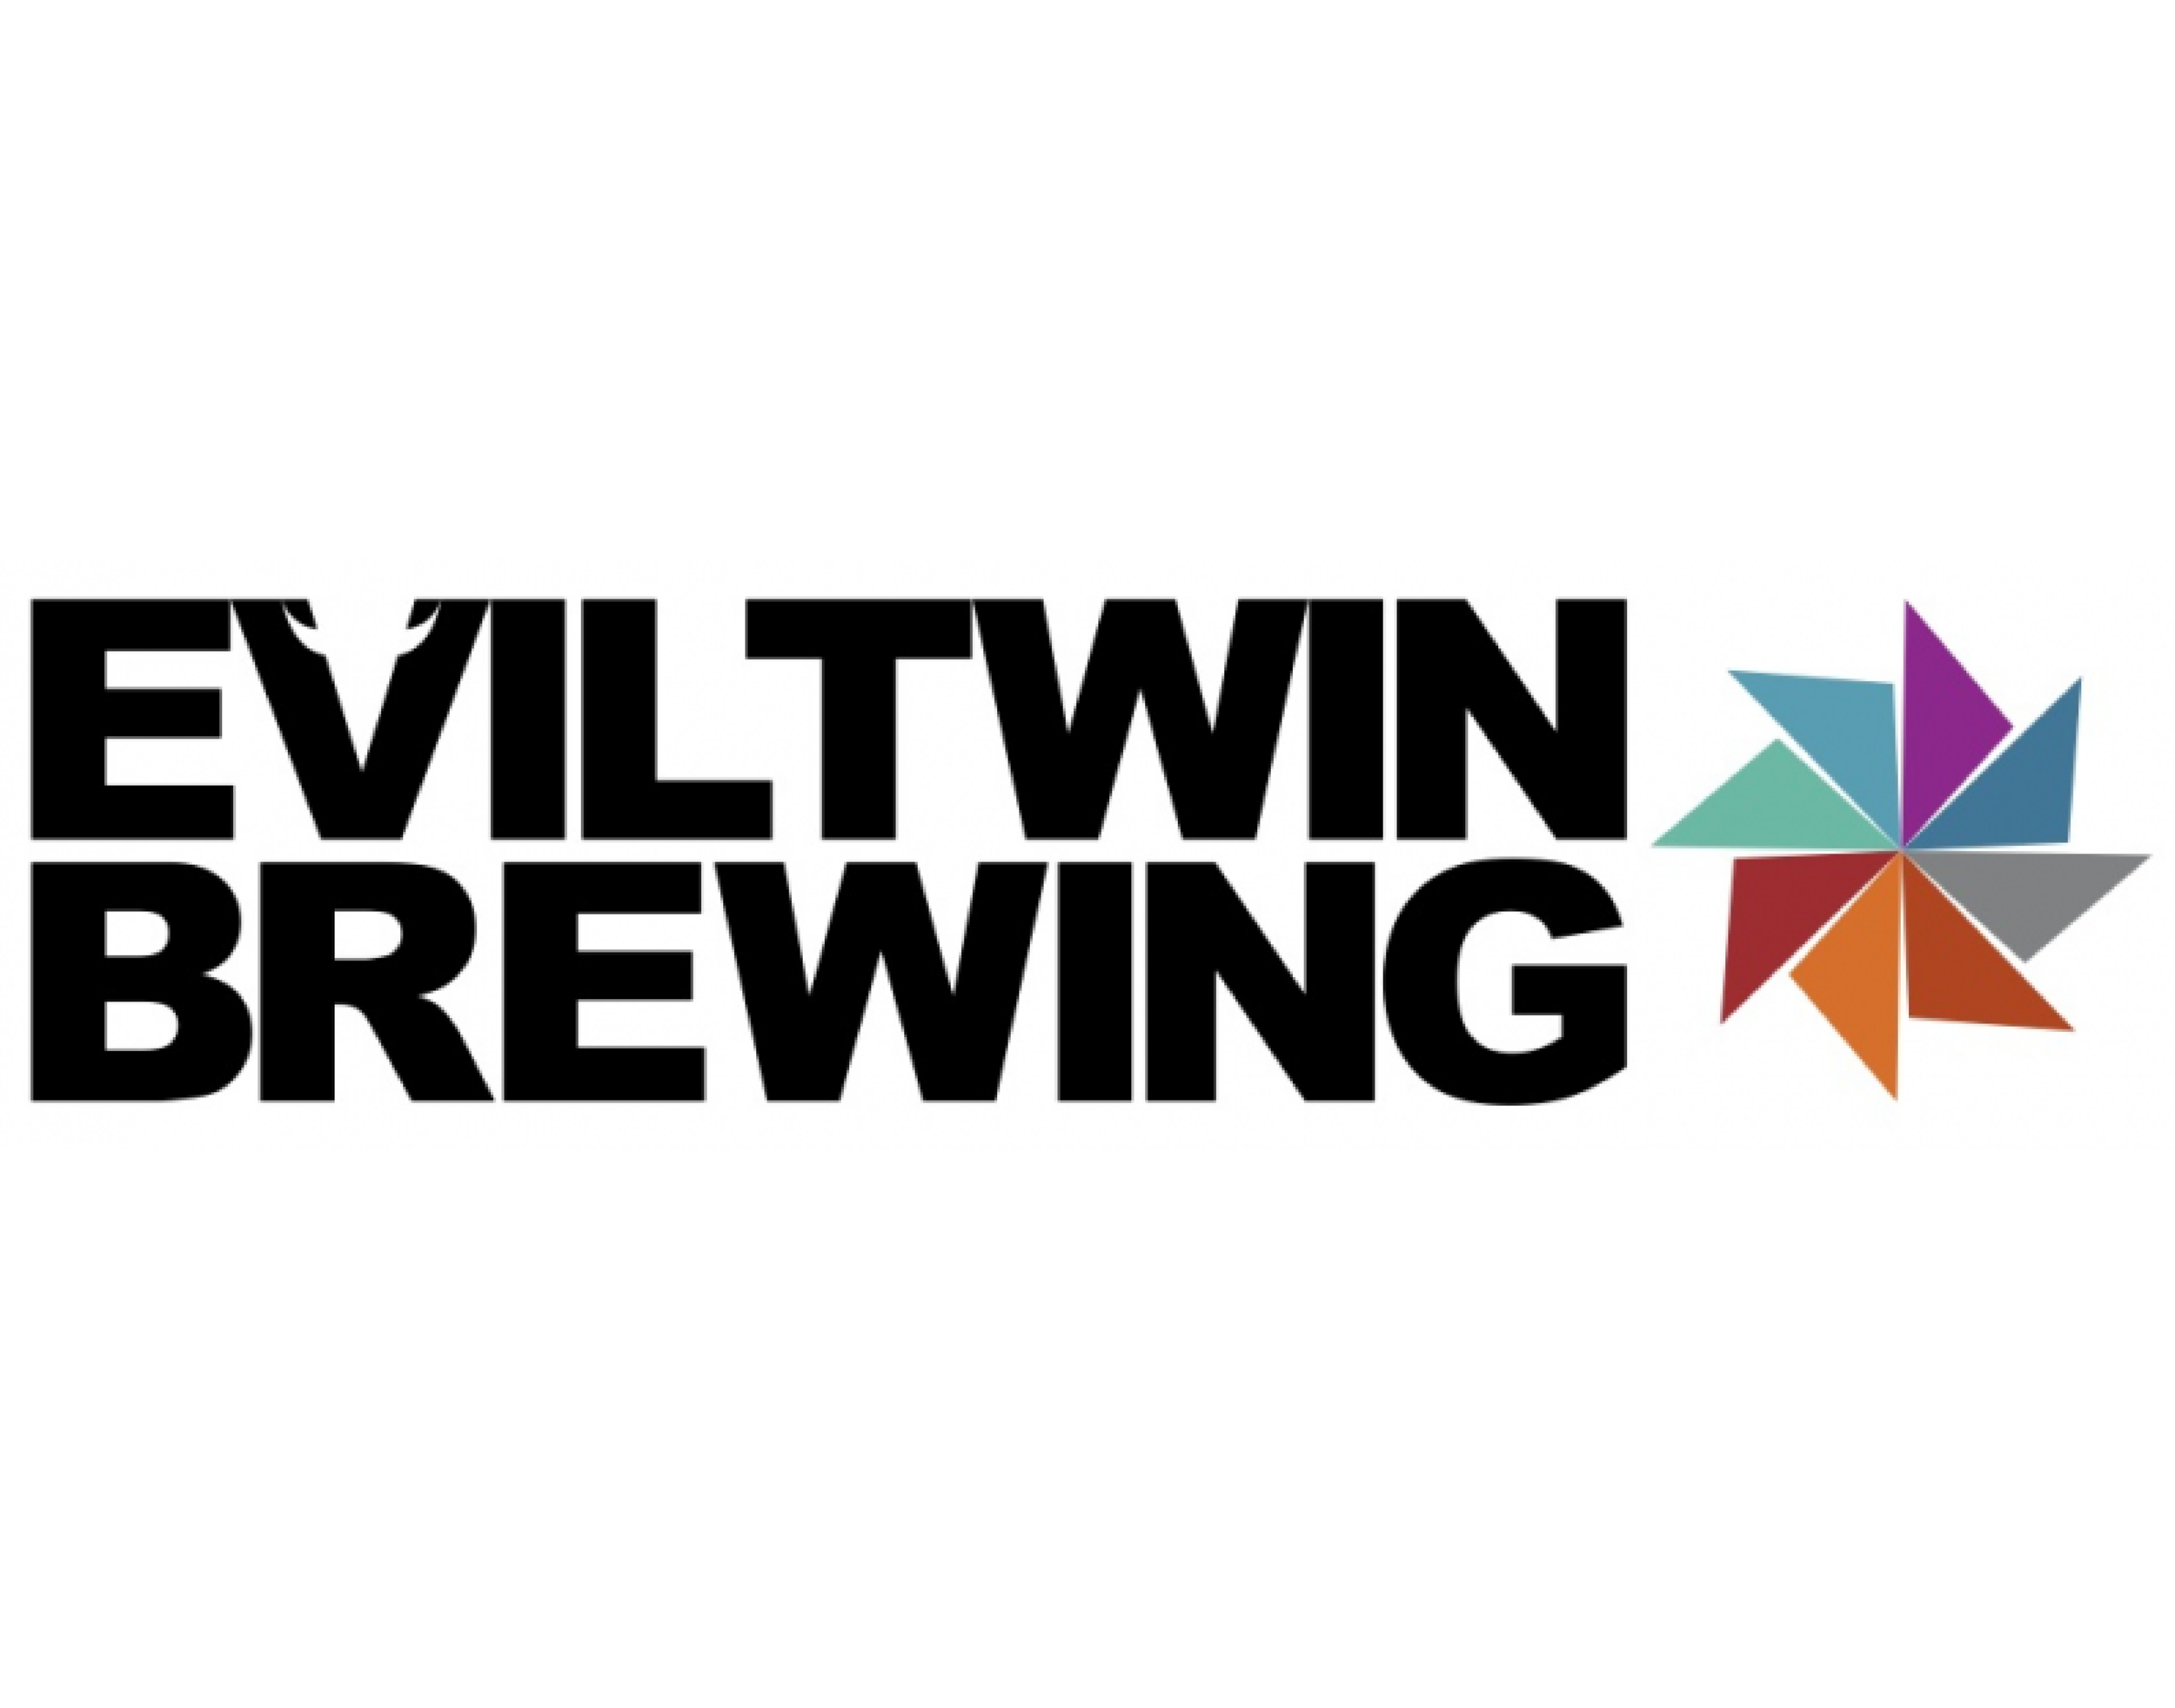 Evil Twin Brewing logo. Links to Evil Twin website.